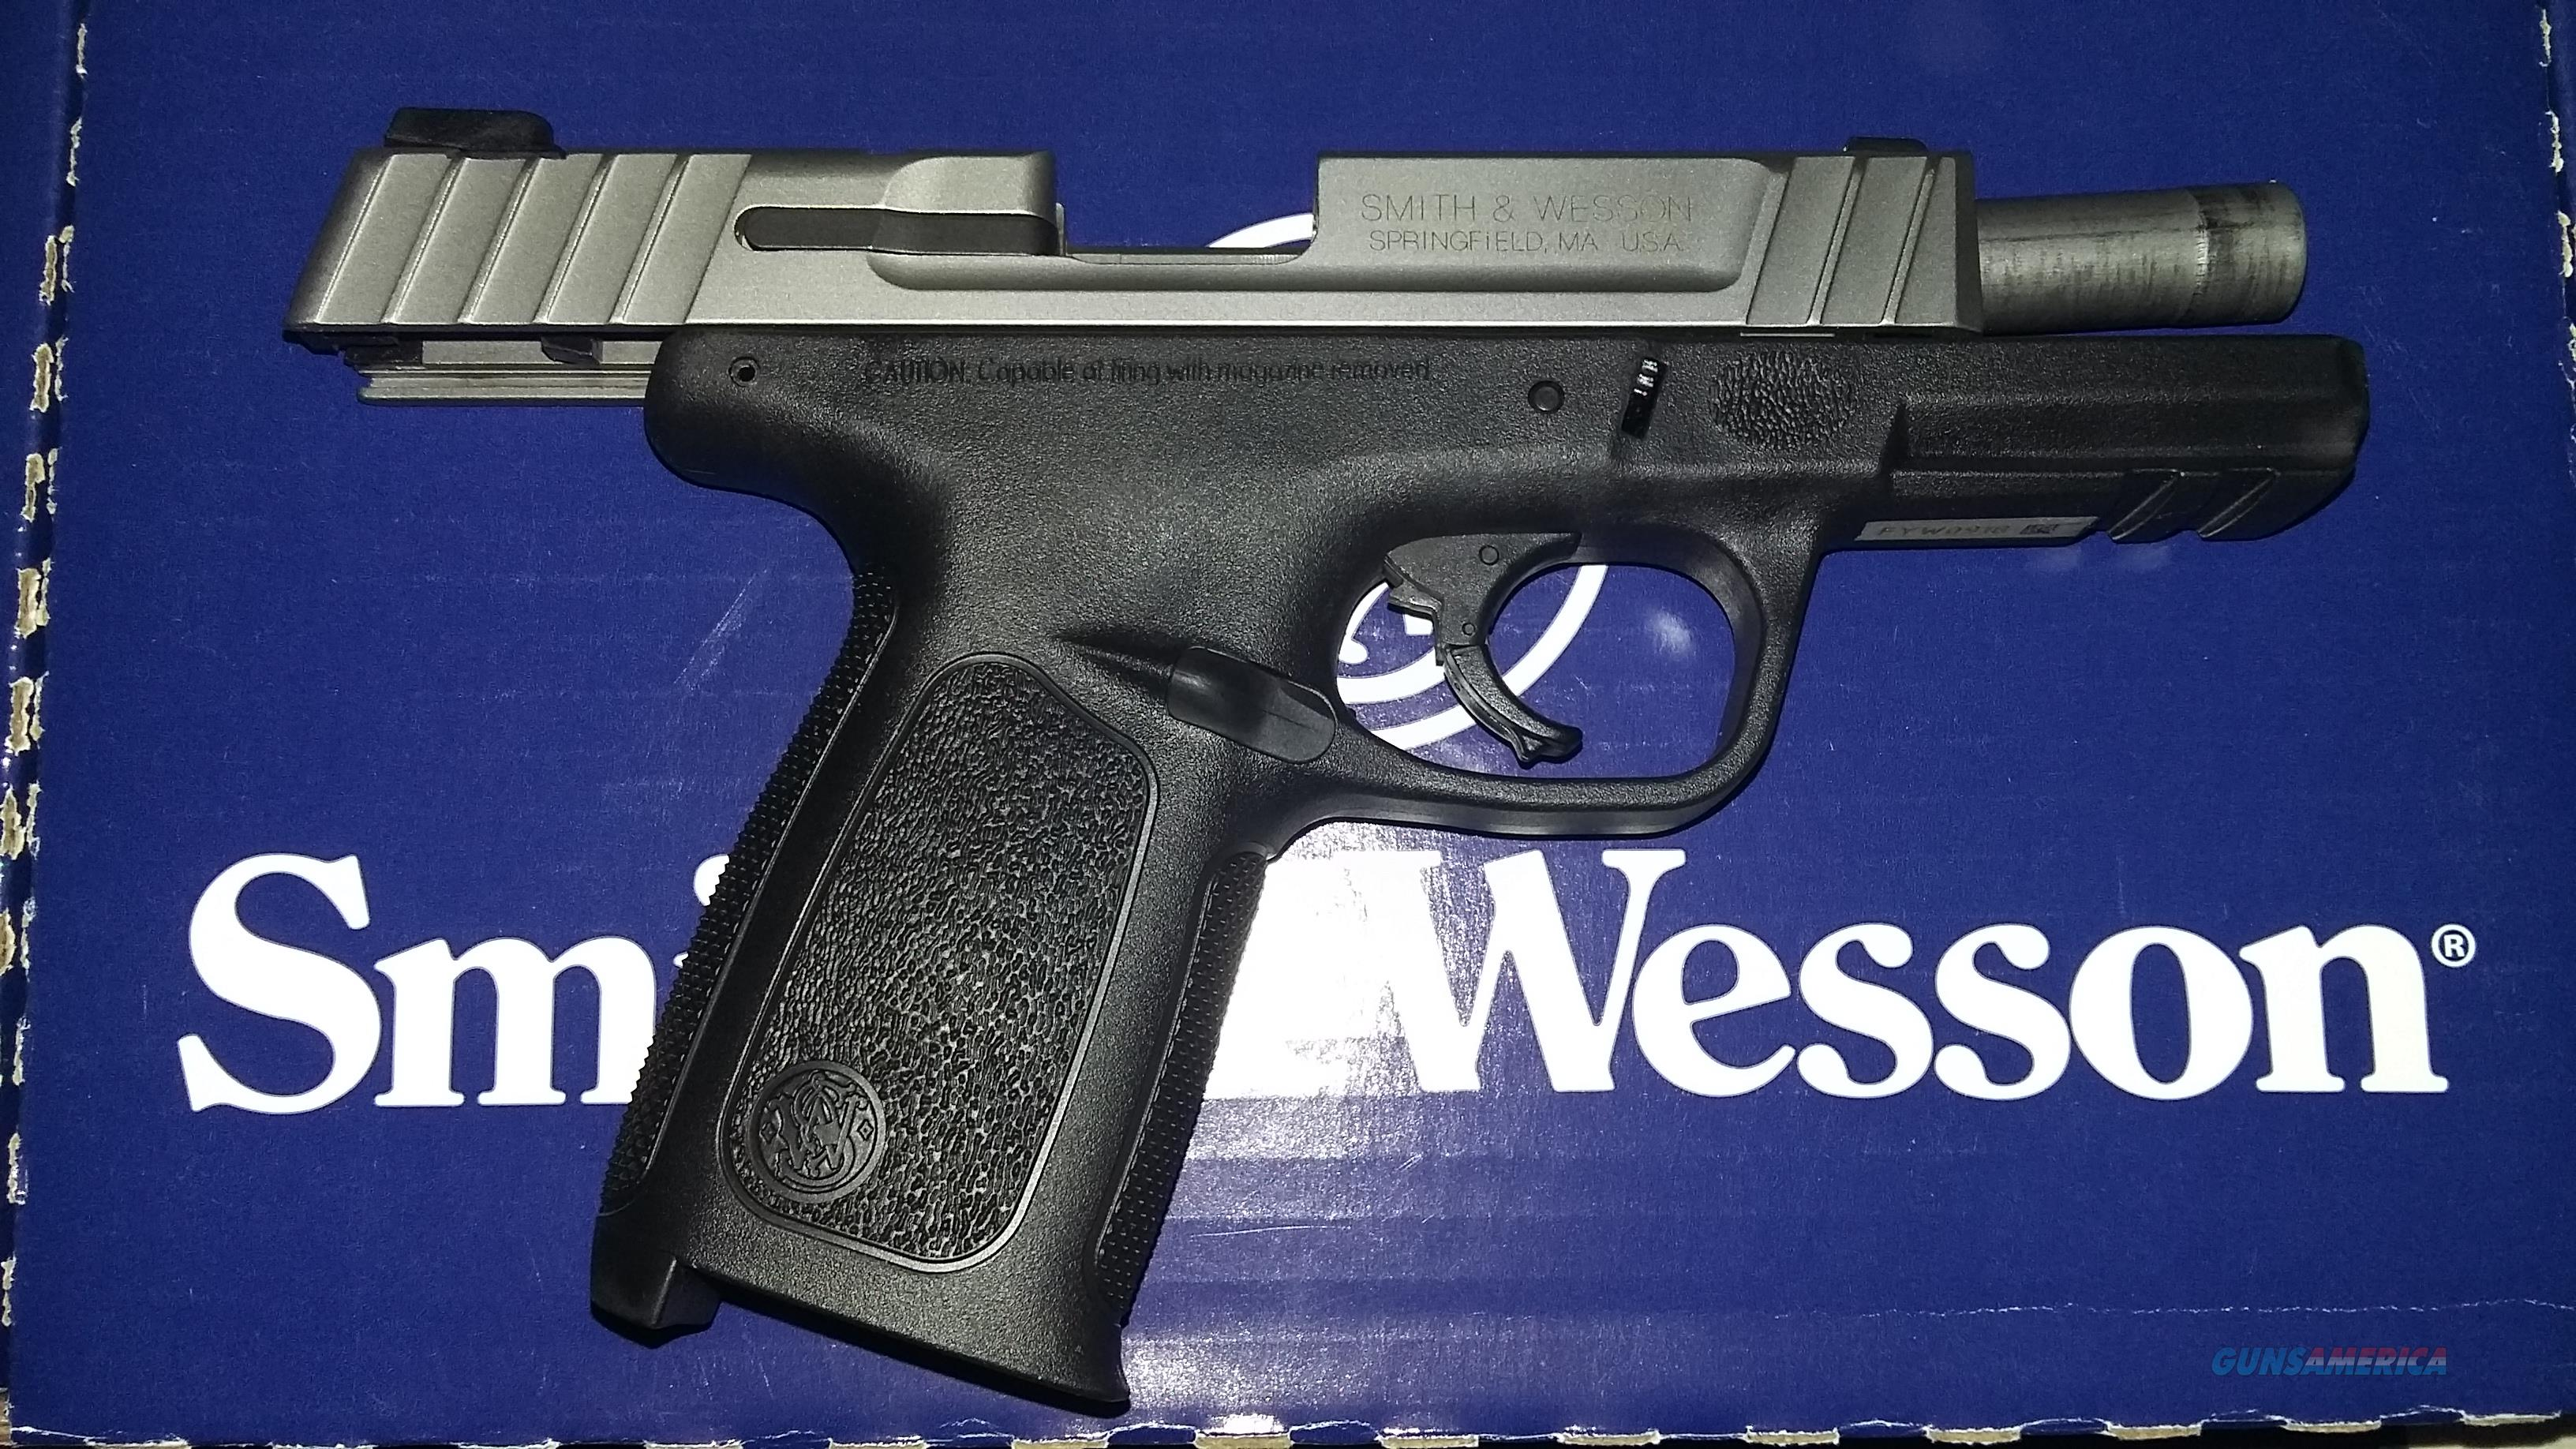 Smith & Wesson SD40 VE Semi-Auto Pistol (2 x 14 Rds Mags)  Guns > Pistols > Smith & Wesson Pistols - Autos > Polymer Frame